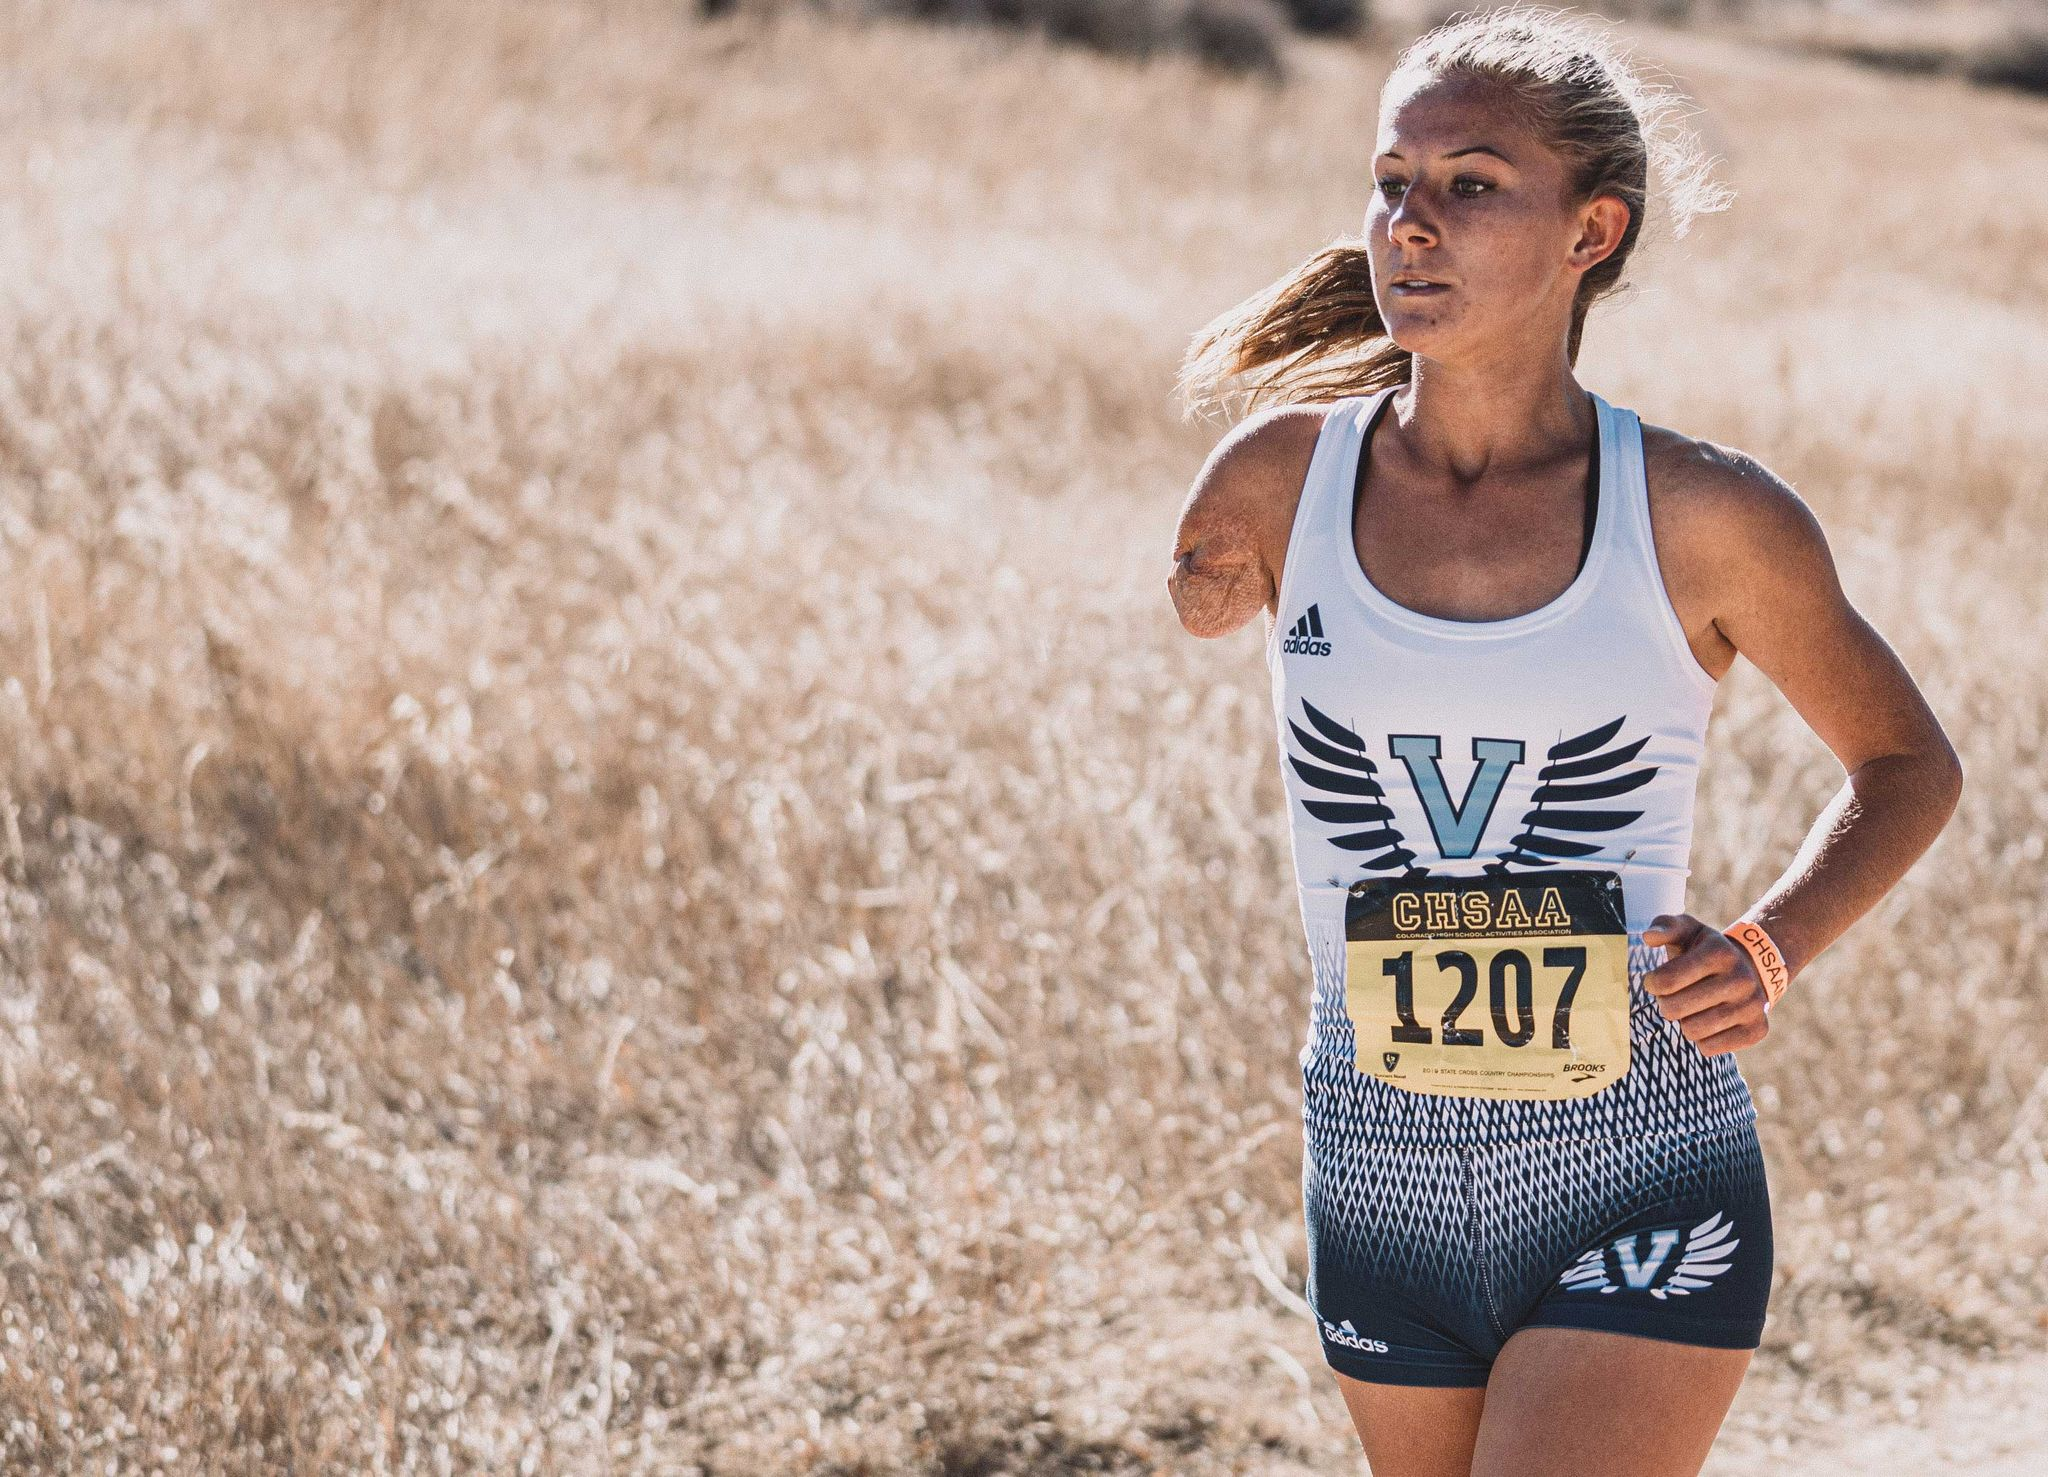 When This Runner Faced Unspeakable Tragedy, Faith Kept Her Going